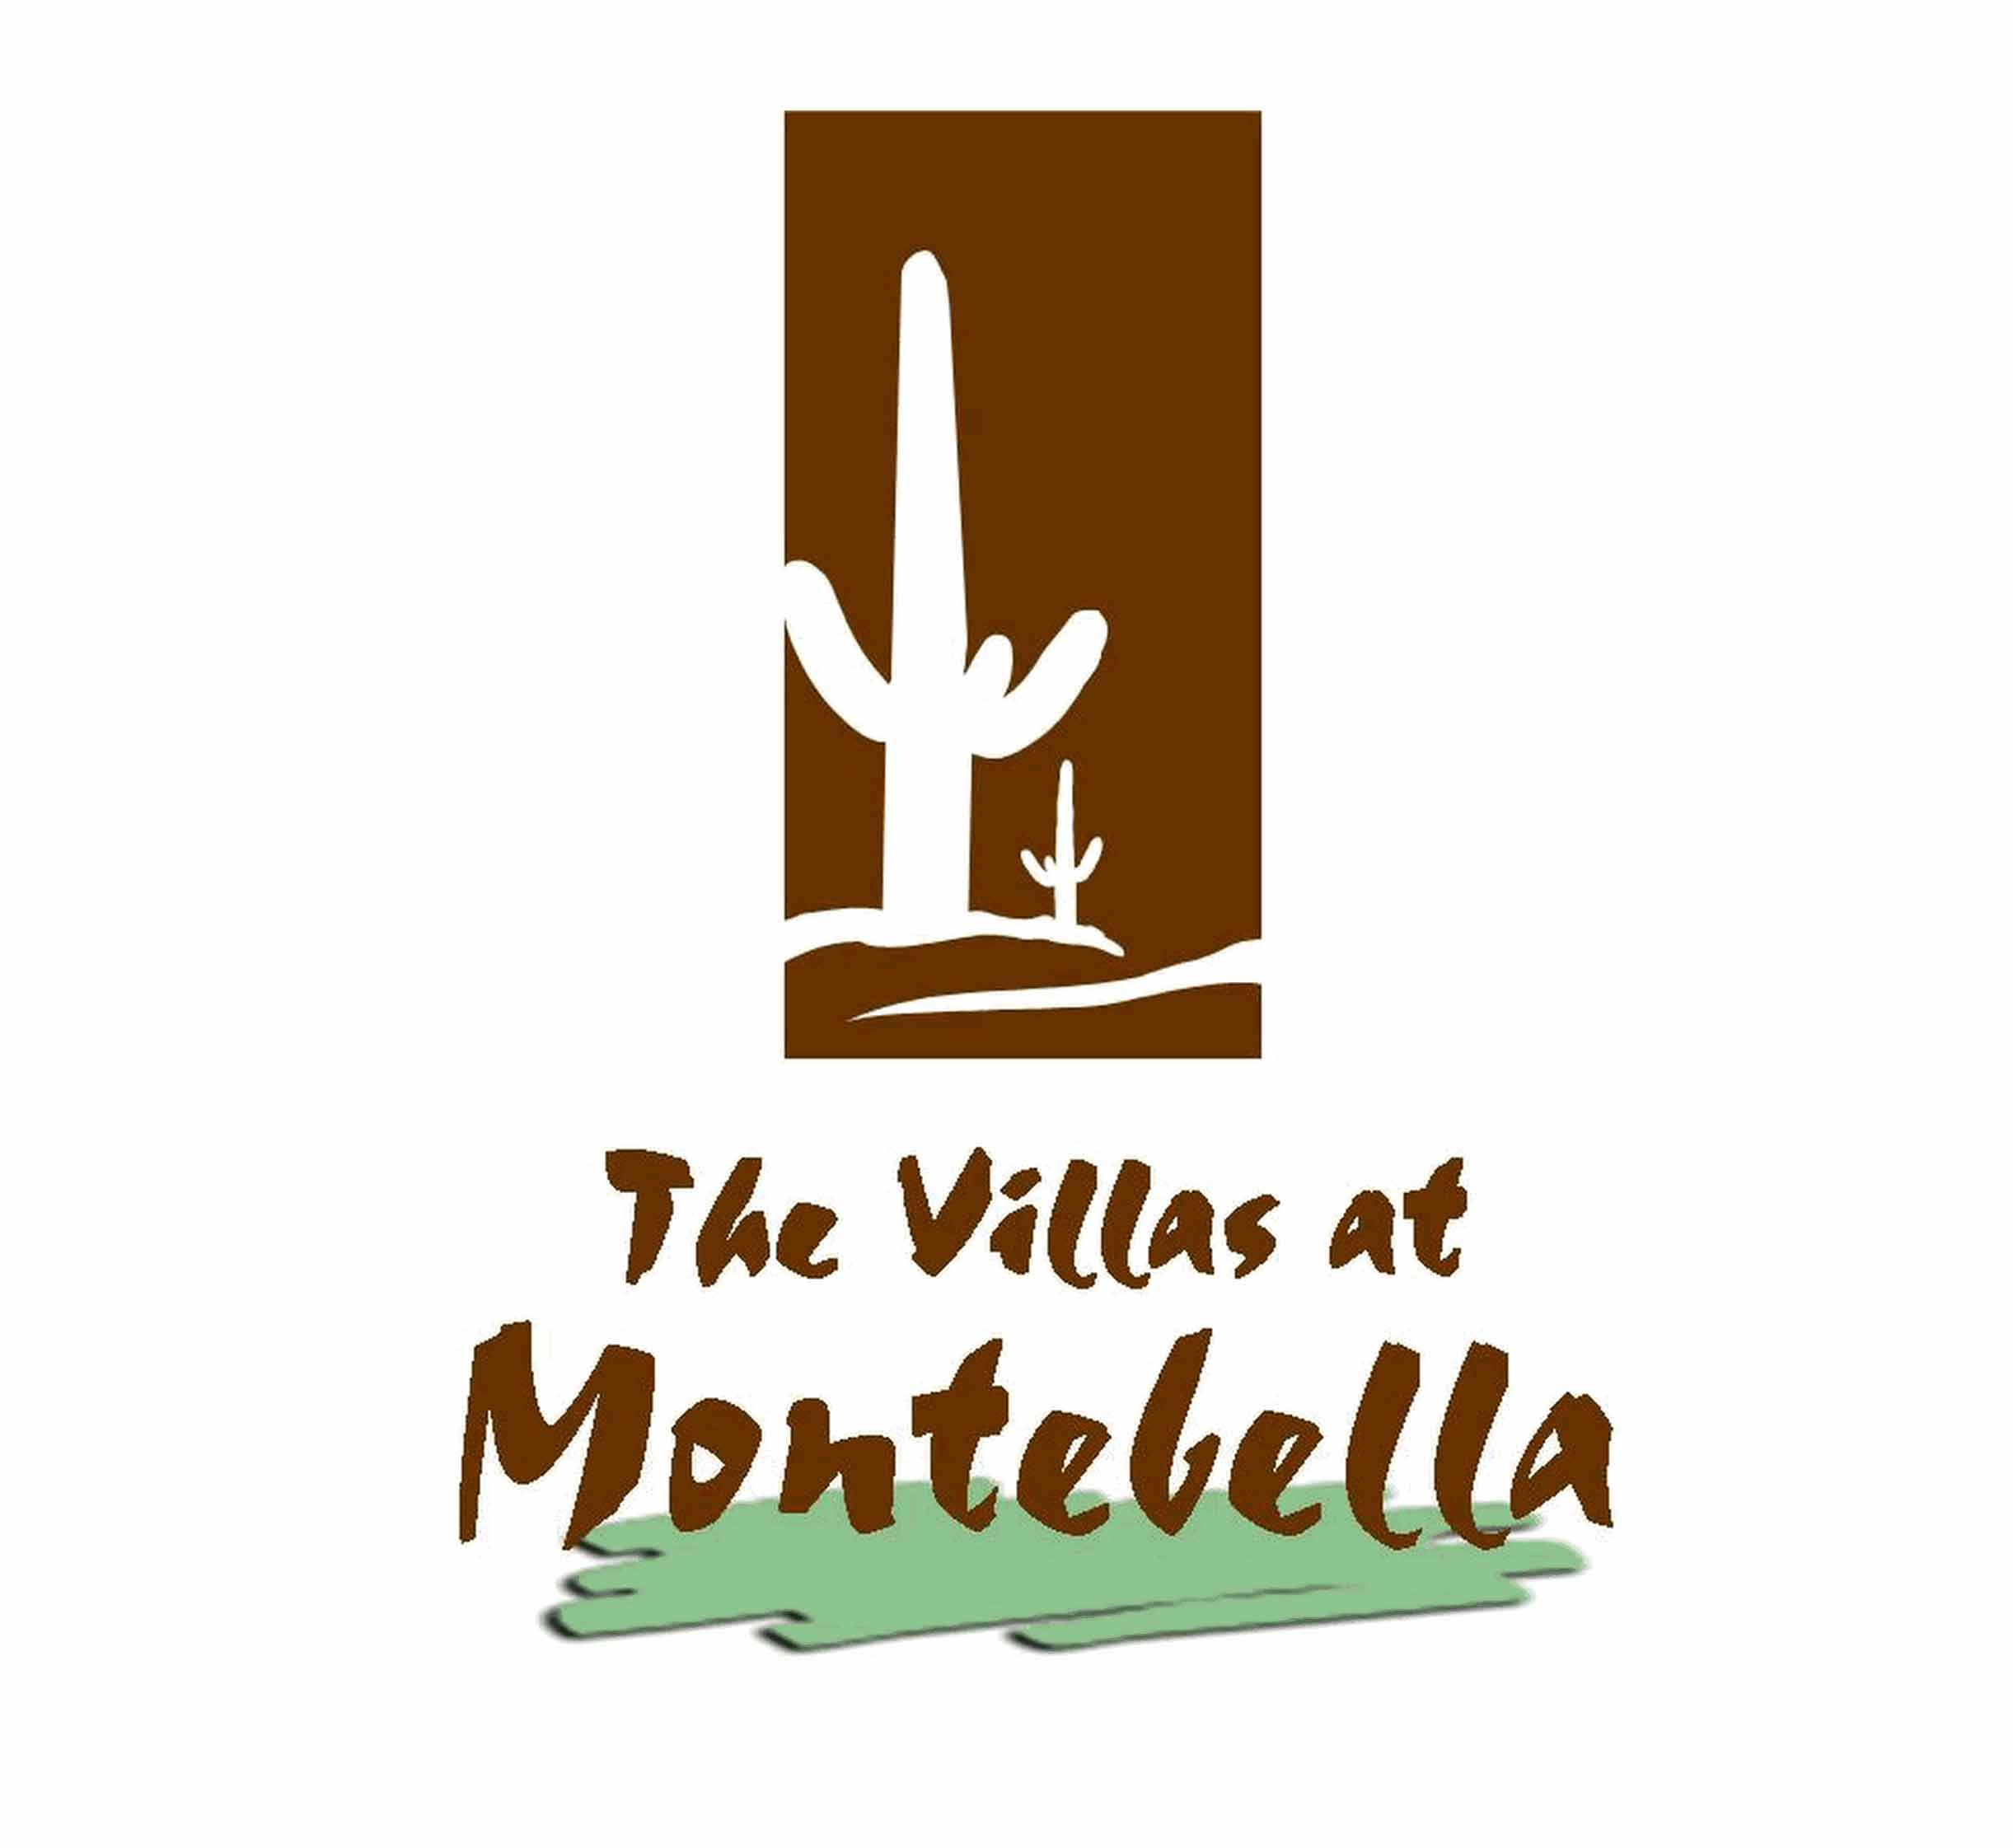 Montebella, logo by New Paradigm graphic design, Santa Rosa, CA